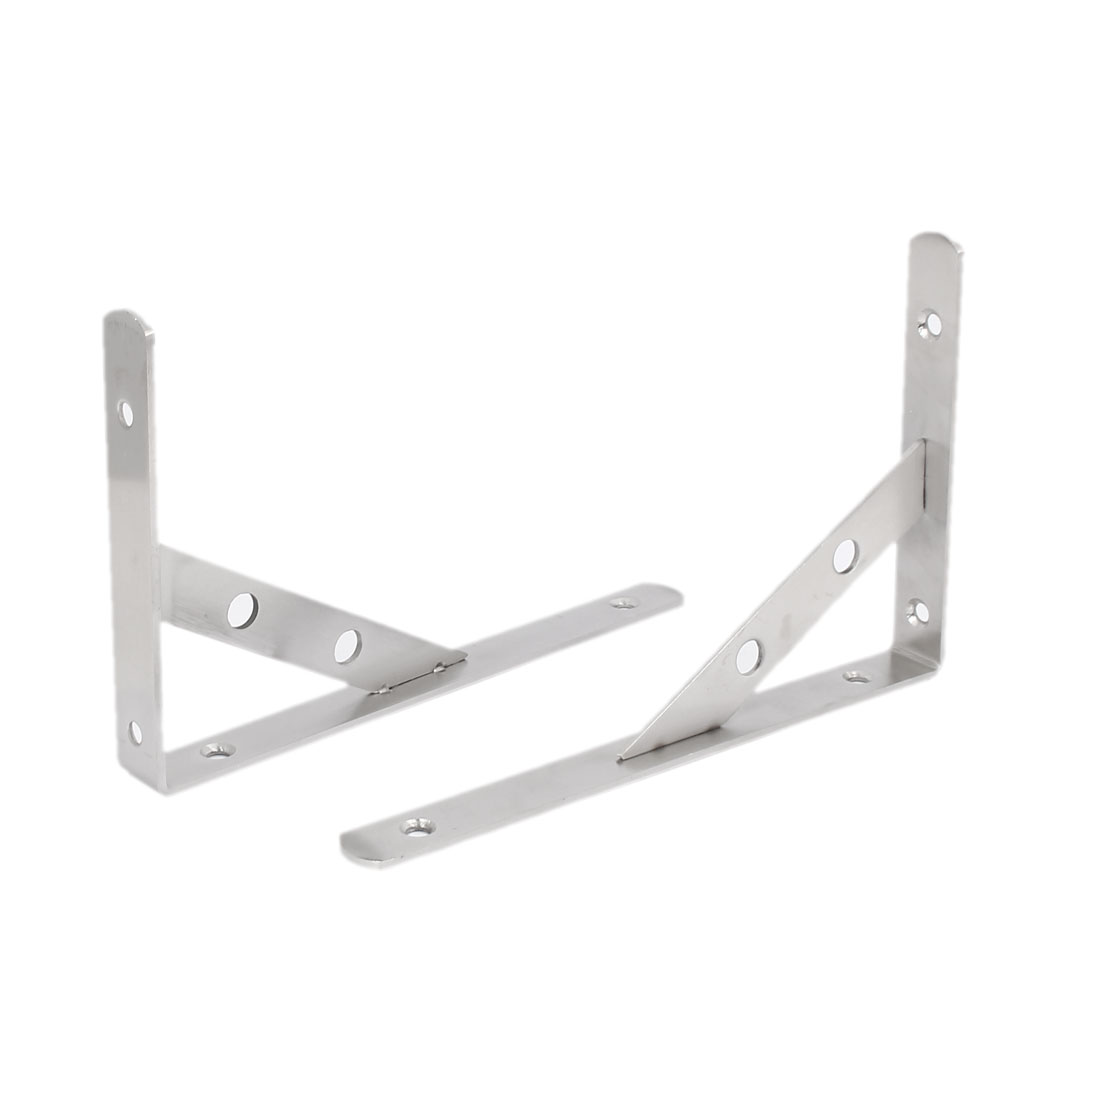 "8"" x 5"" Metal L Shaped Angle Shelf Bracket Support Holder Corner Brace 2PCS"